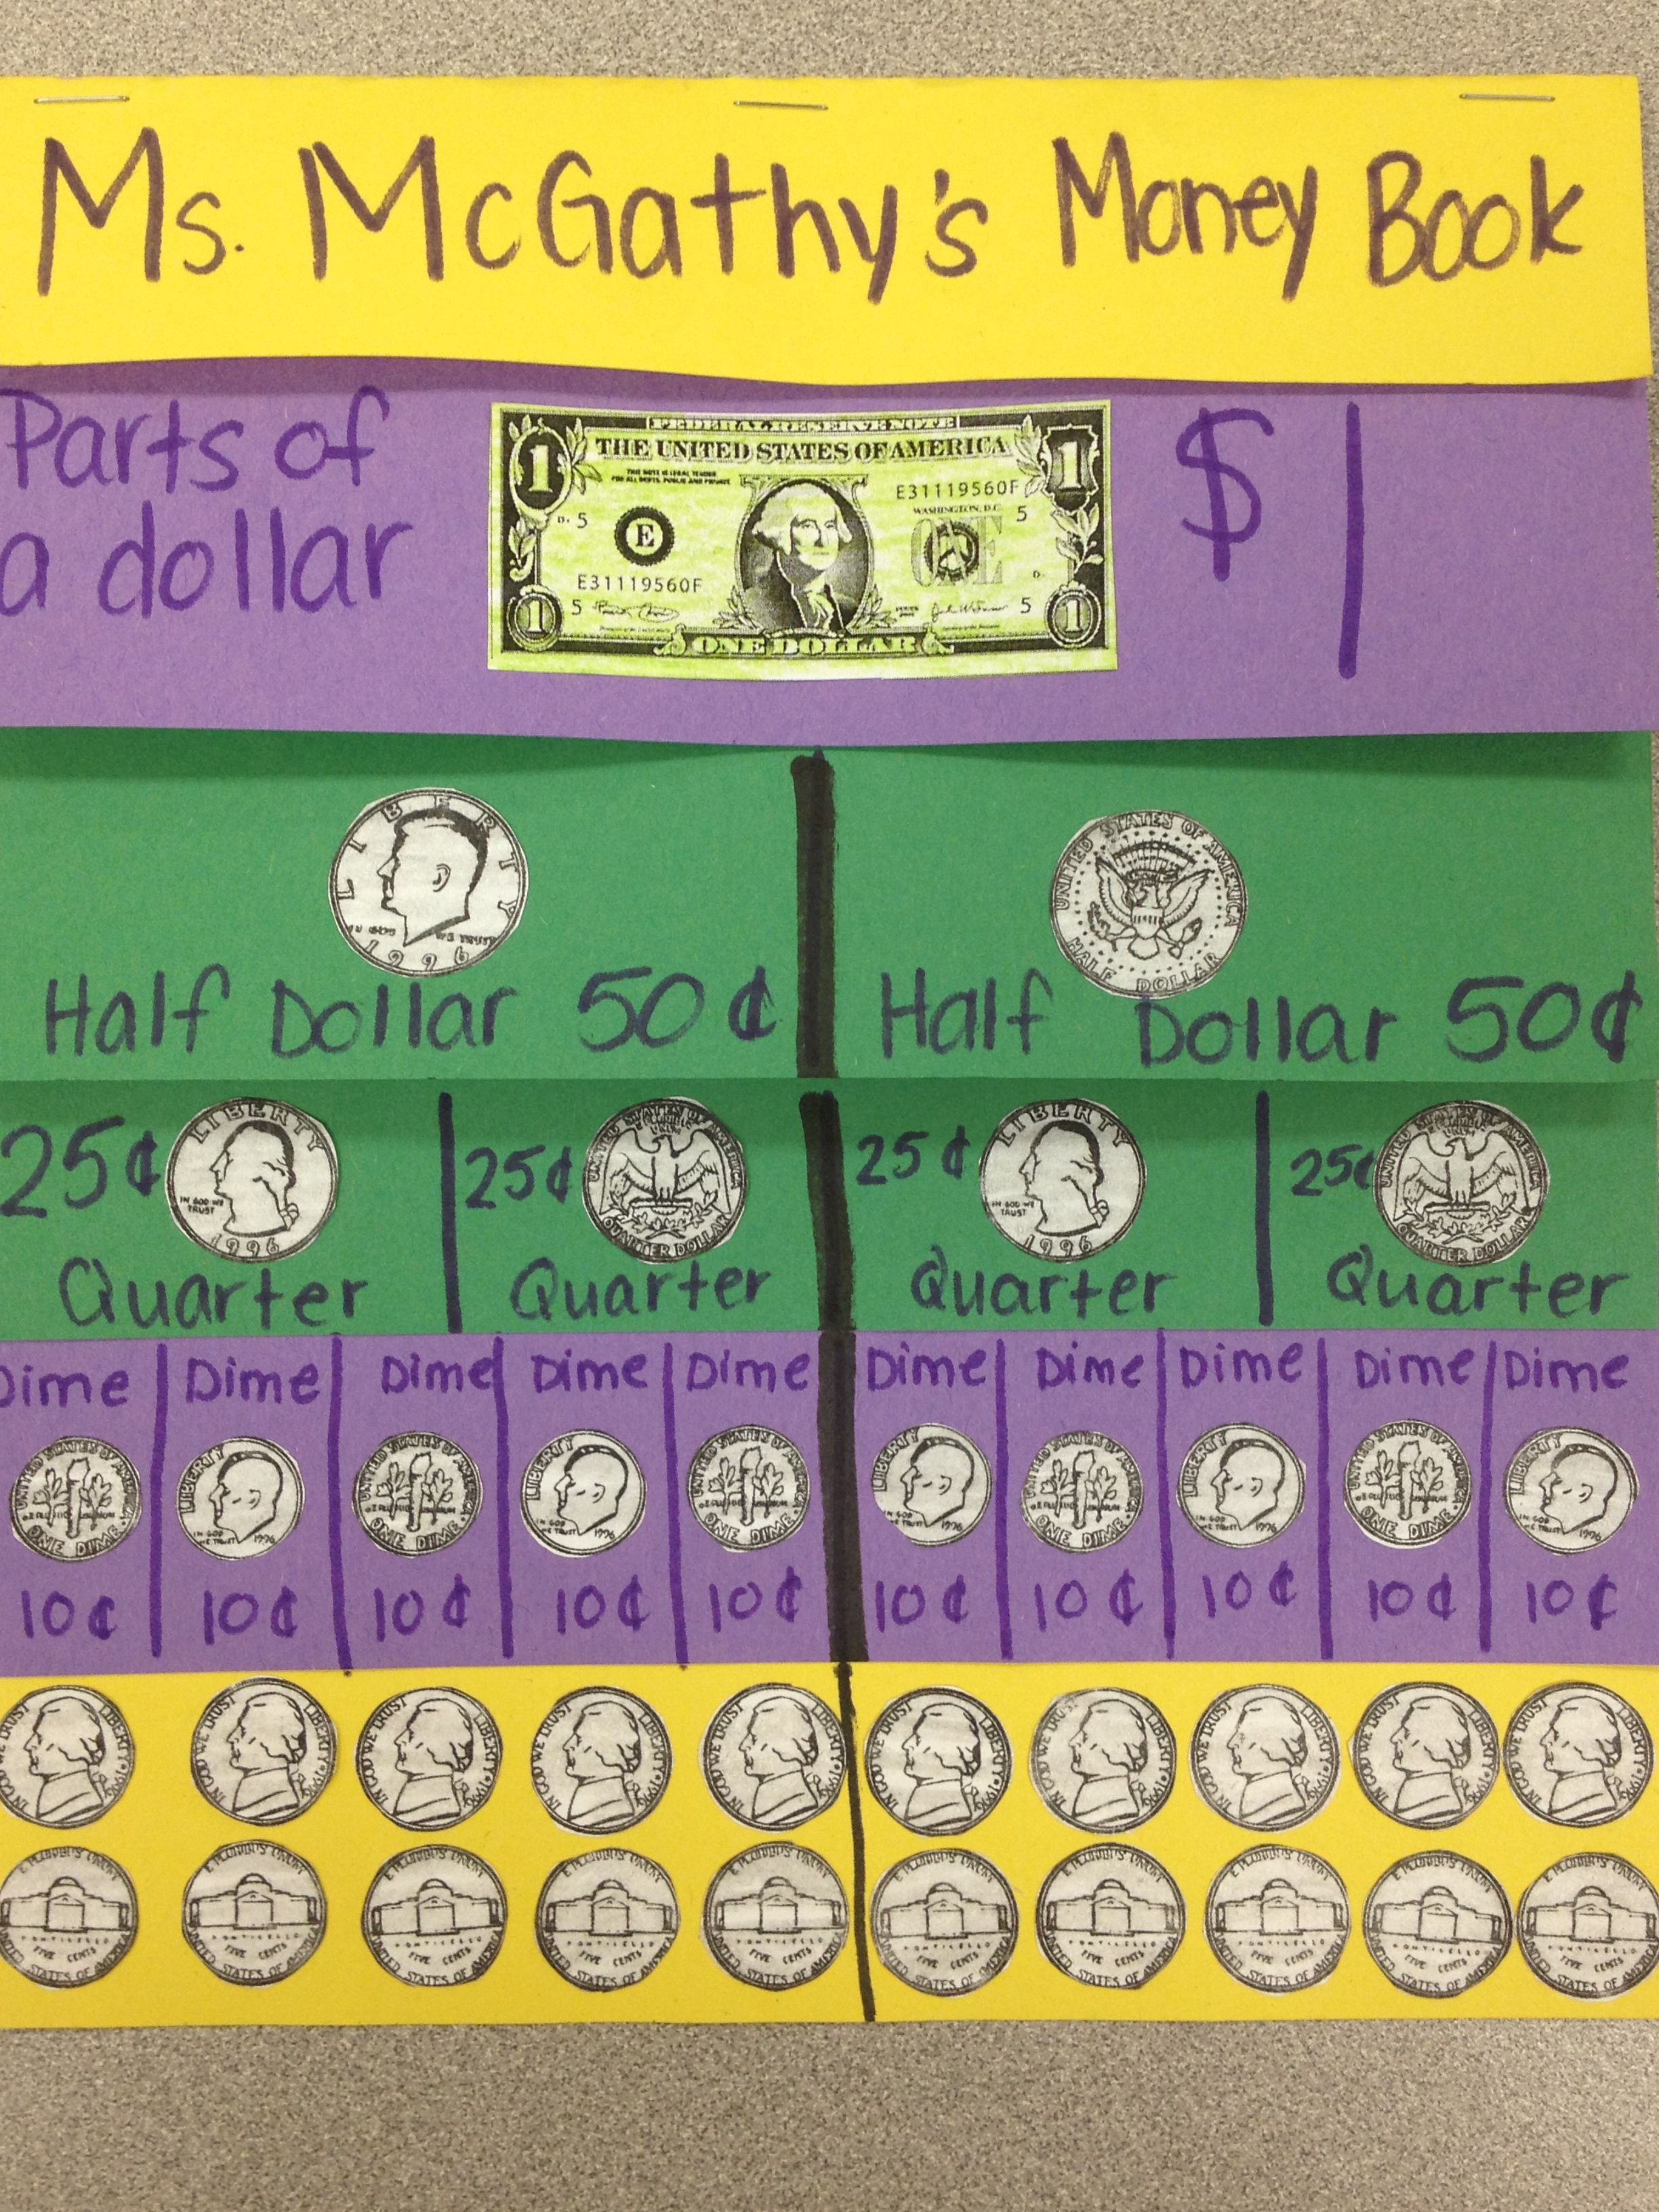 Money Flip Book Show The Parts Of A Dollar Incorporate